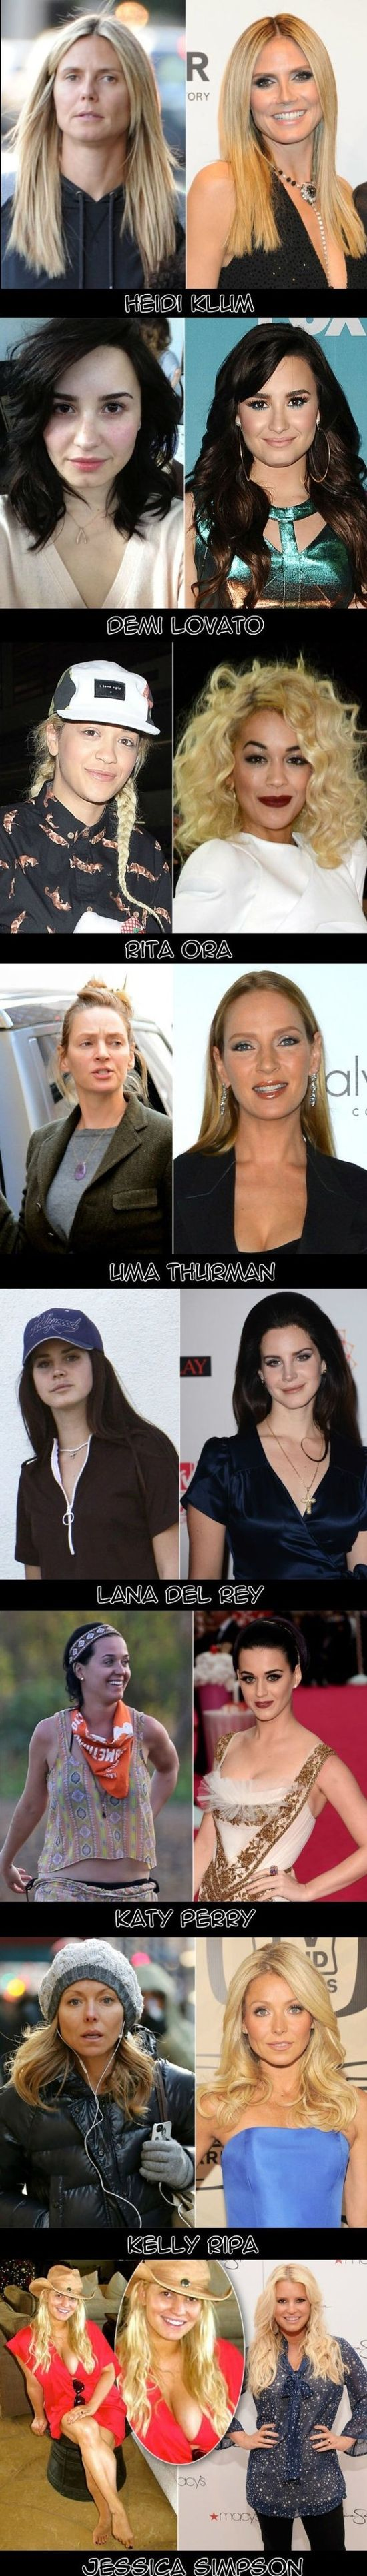 Some Celebrities Without Makeup - www.funny-picture...